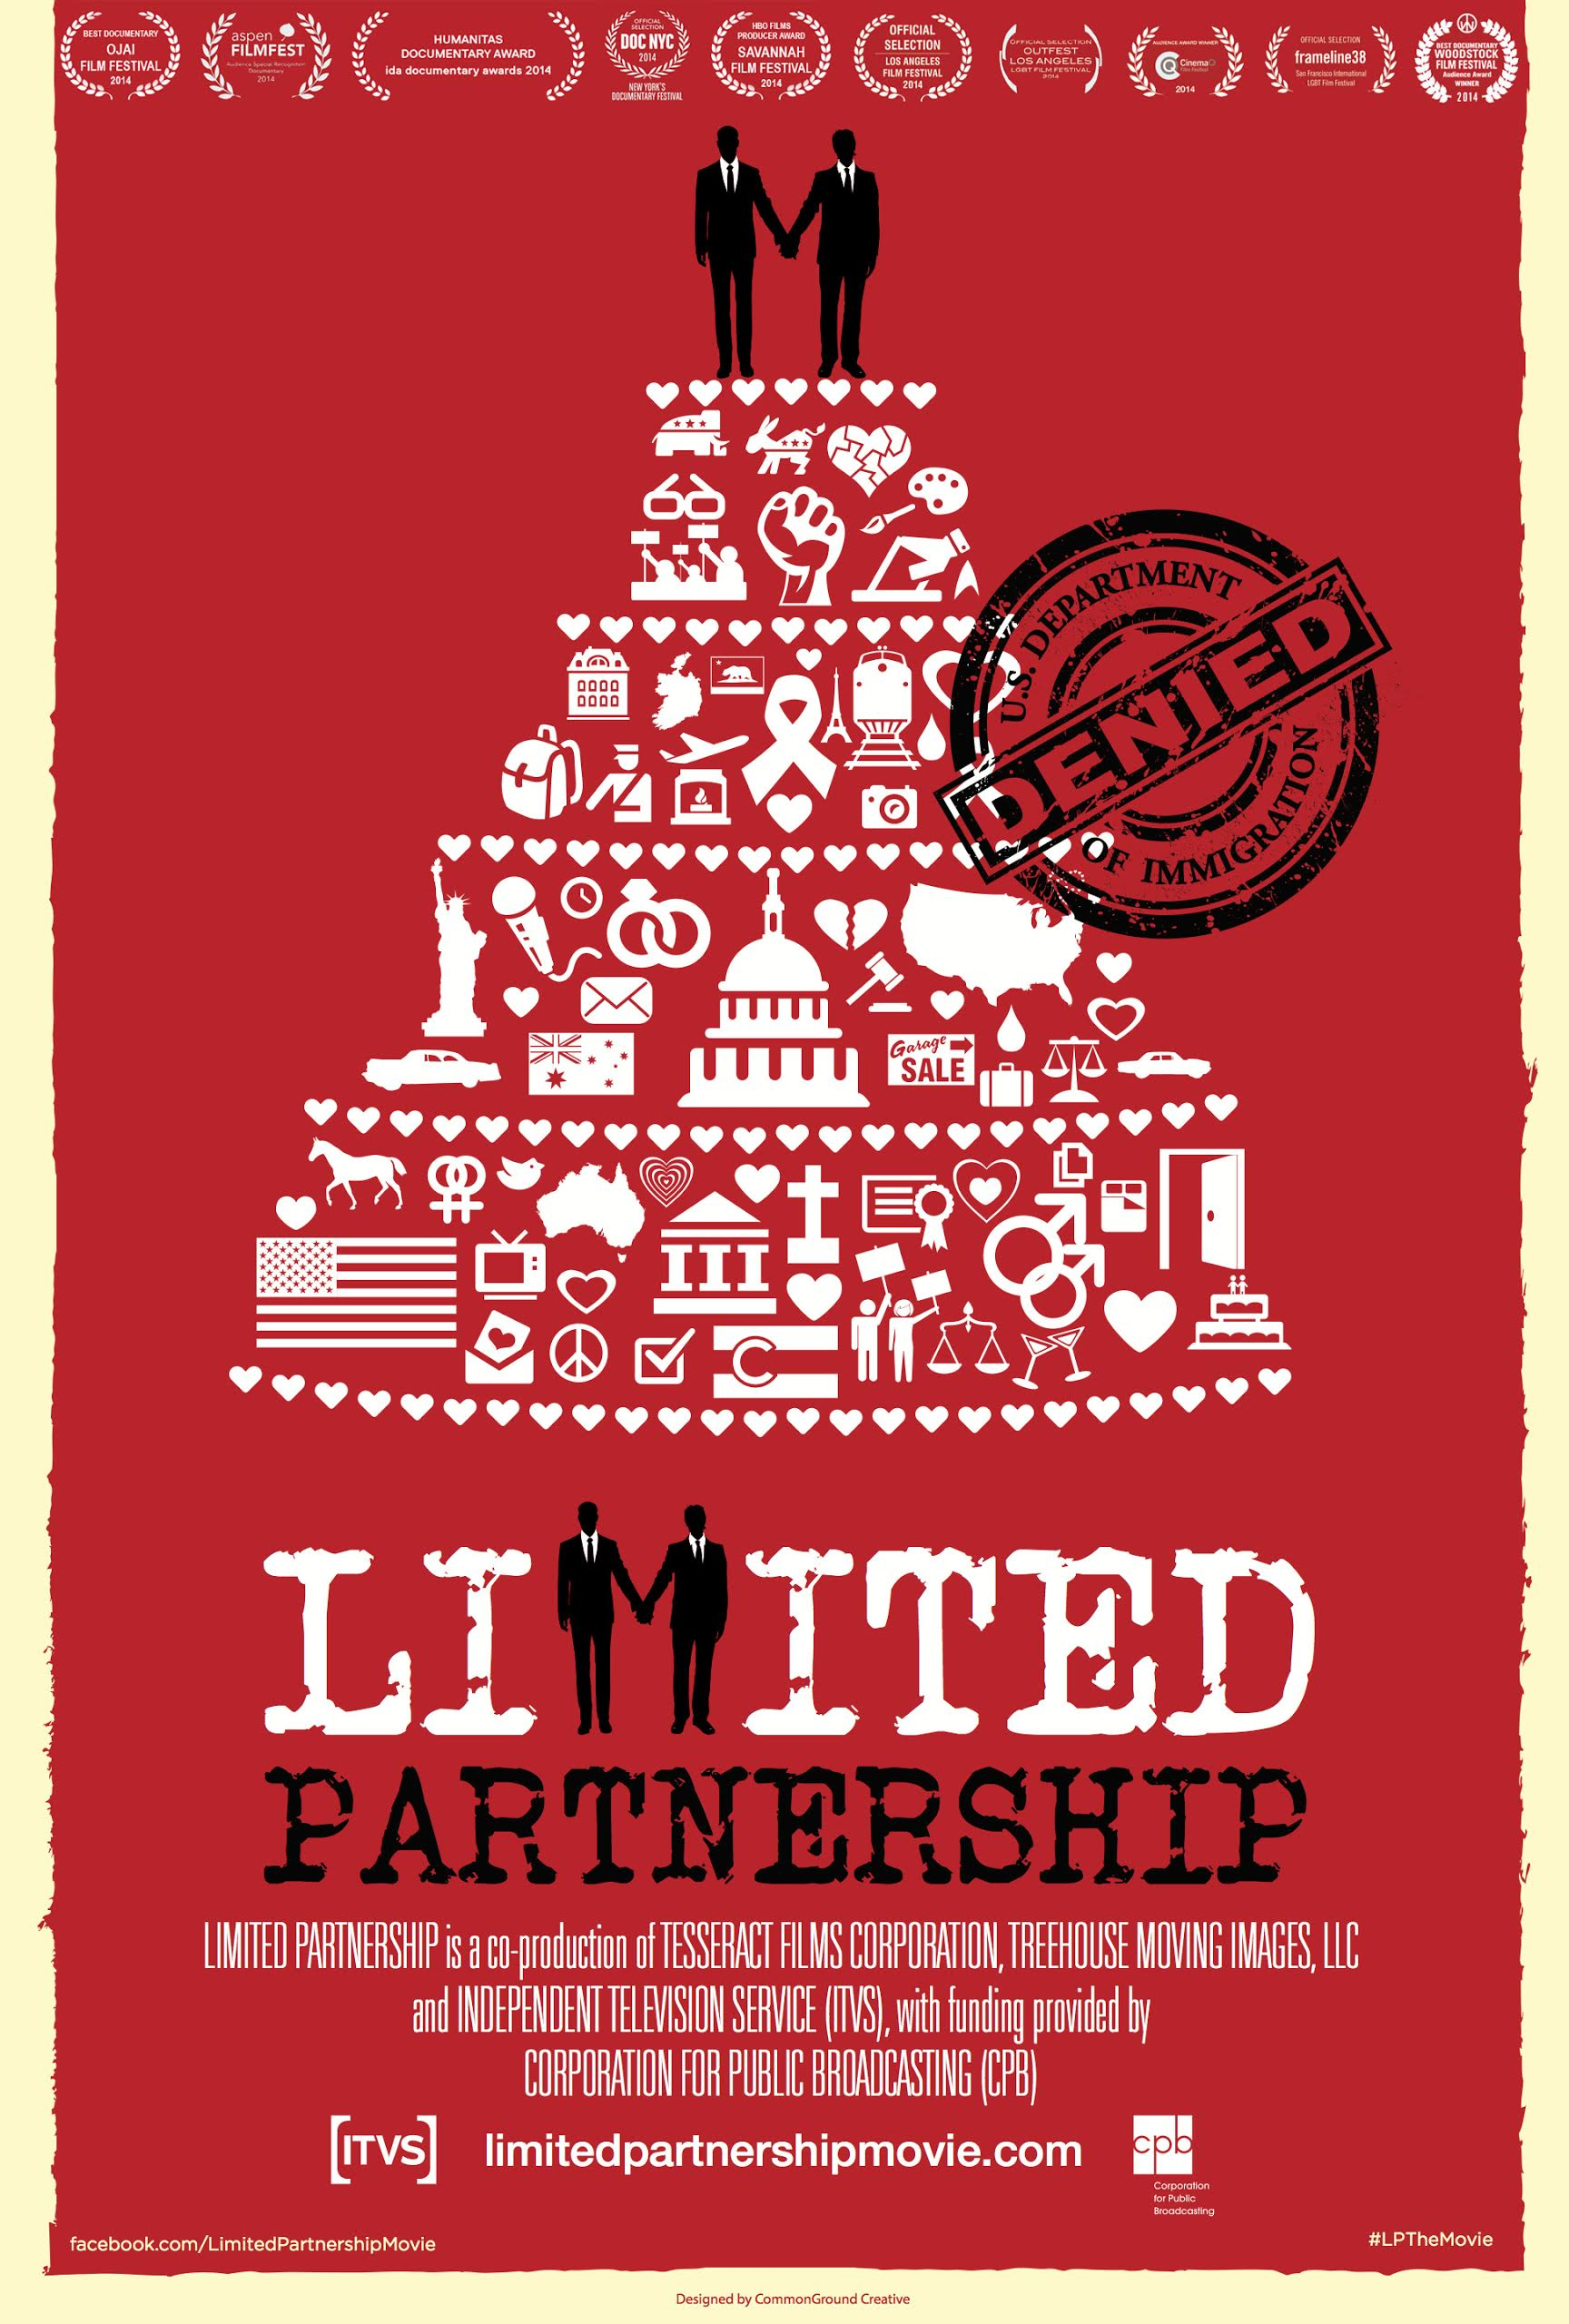 'Limited Partnership' airs tonight on Channel 13